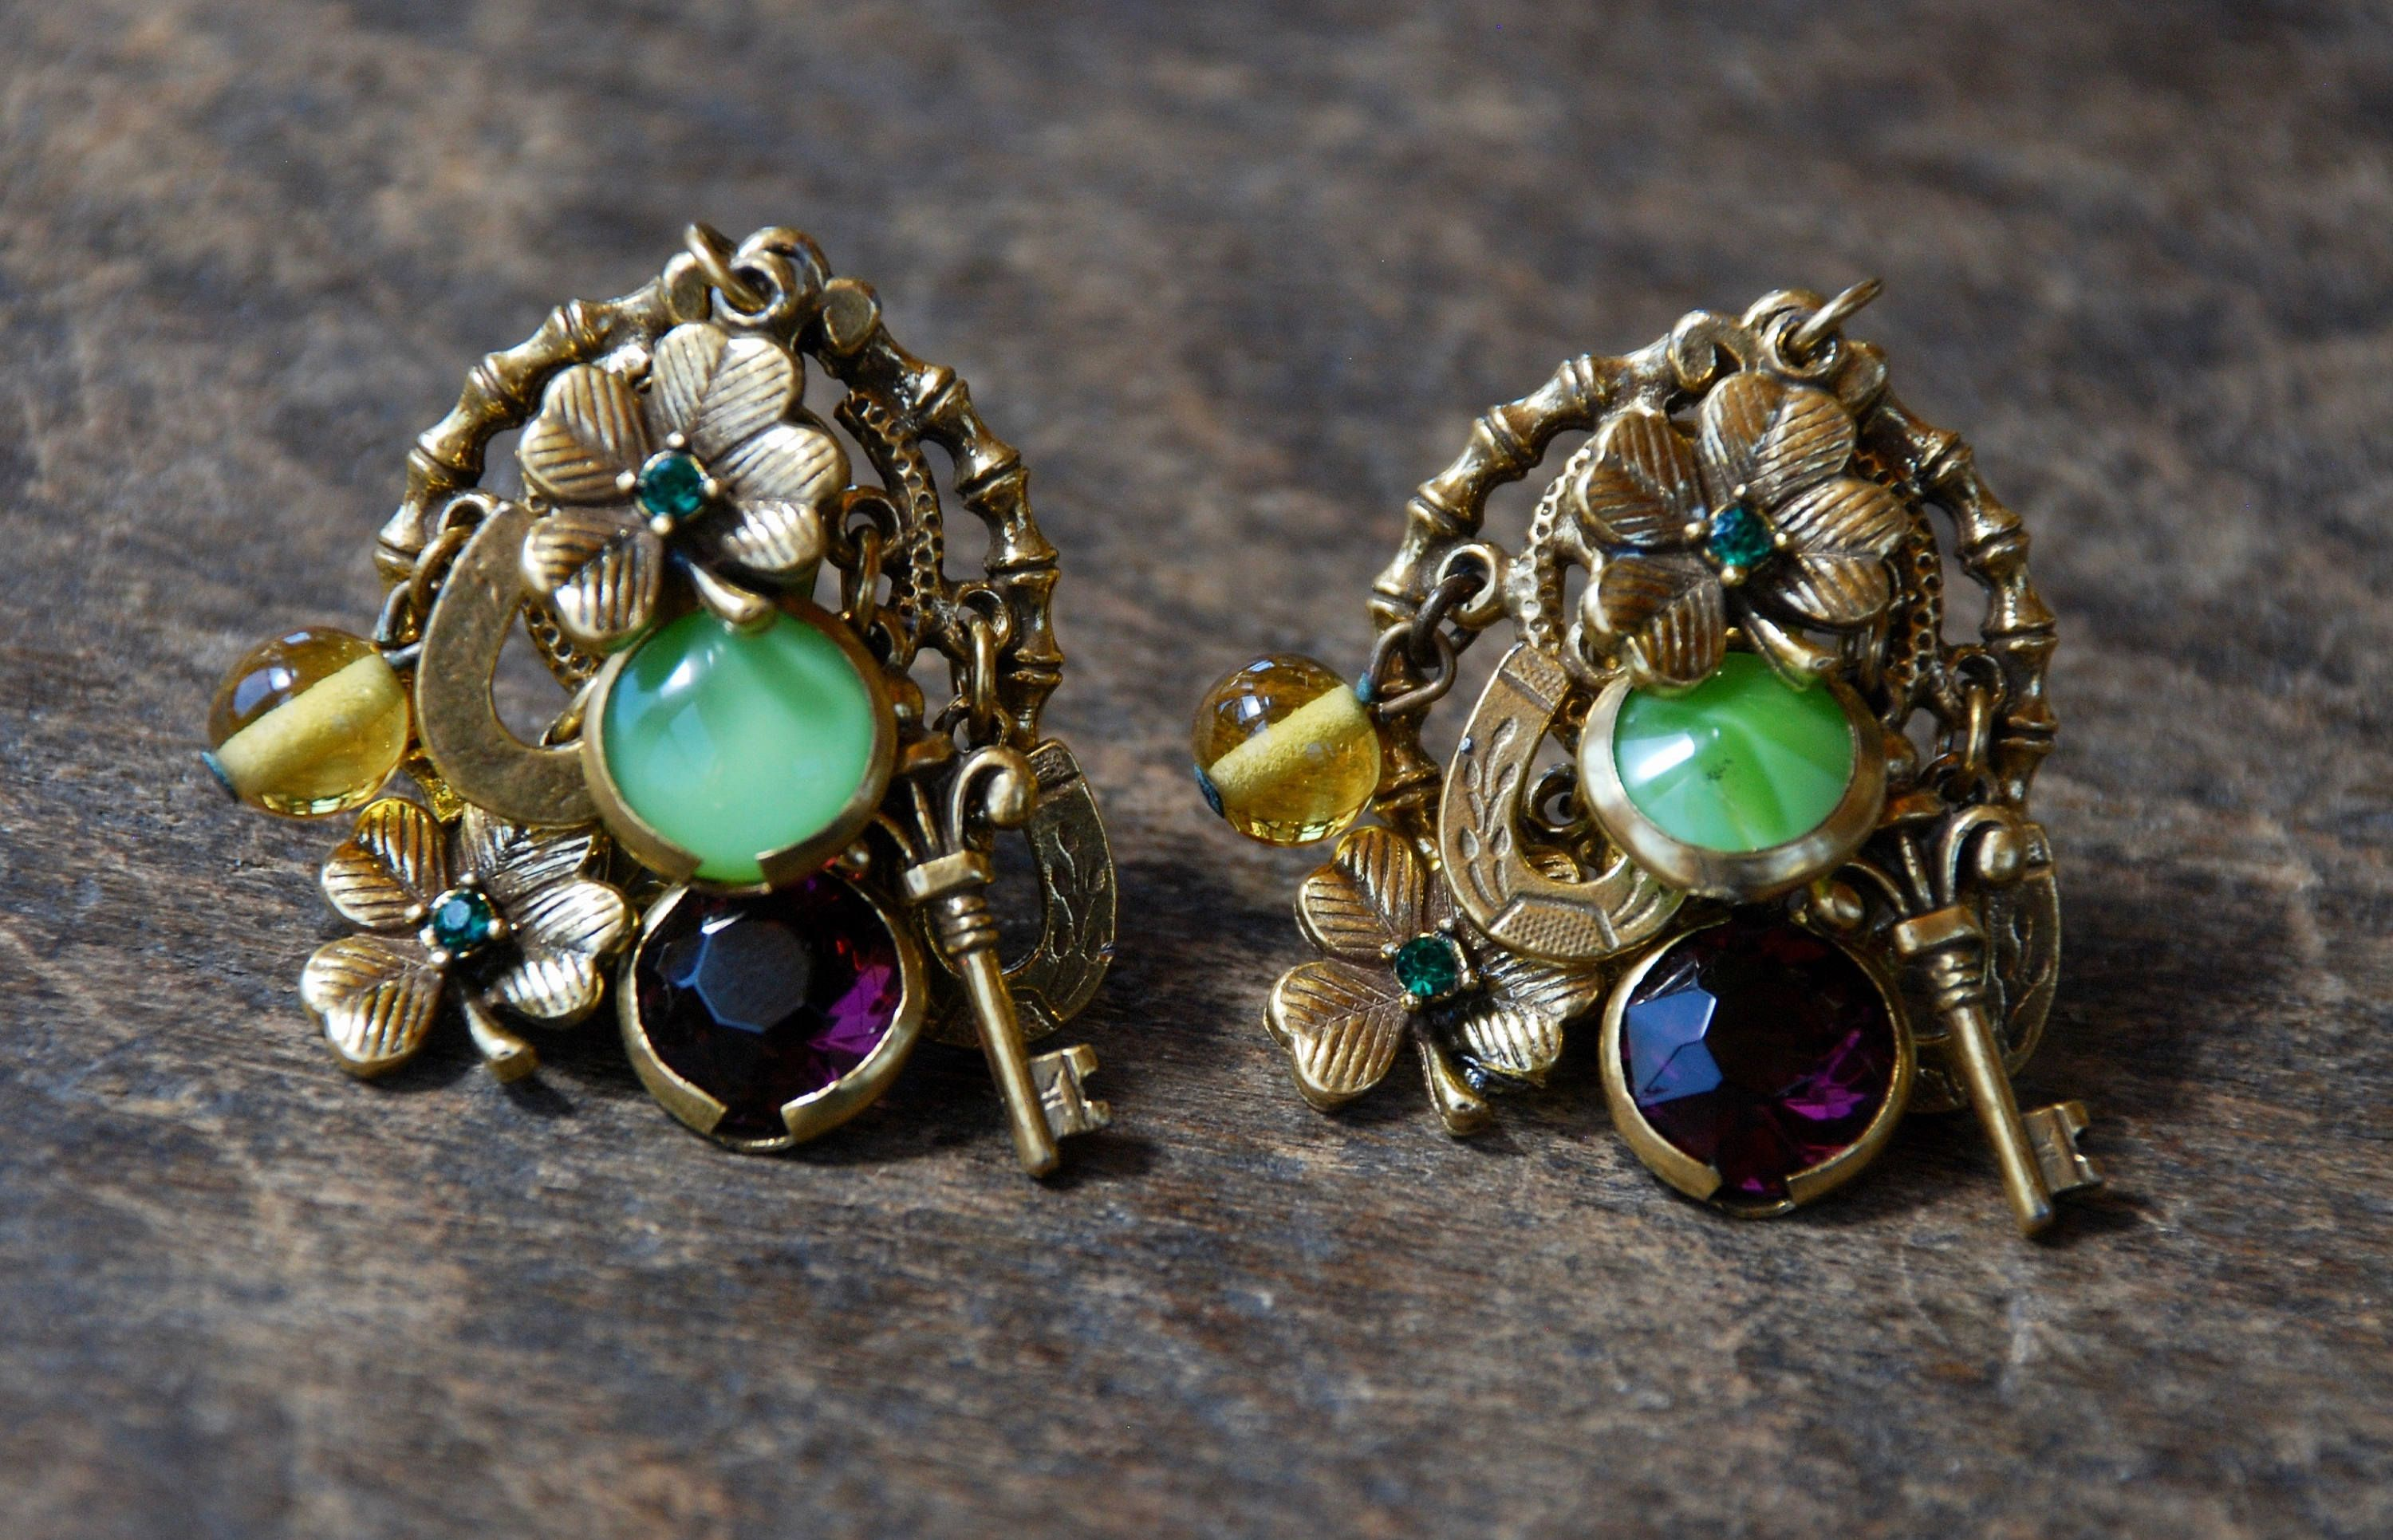 Vintage Signed ART Clip On Earrings Arthur Pepper Clovers